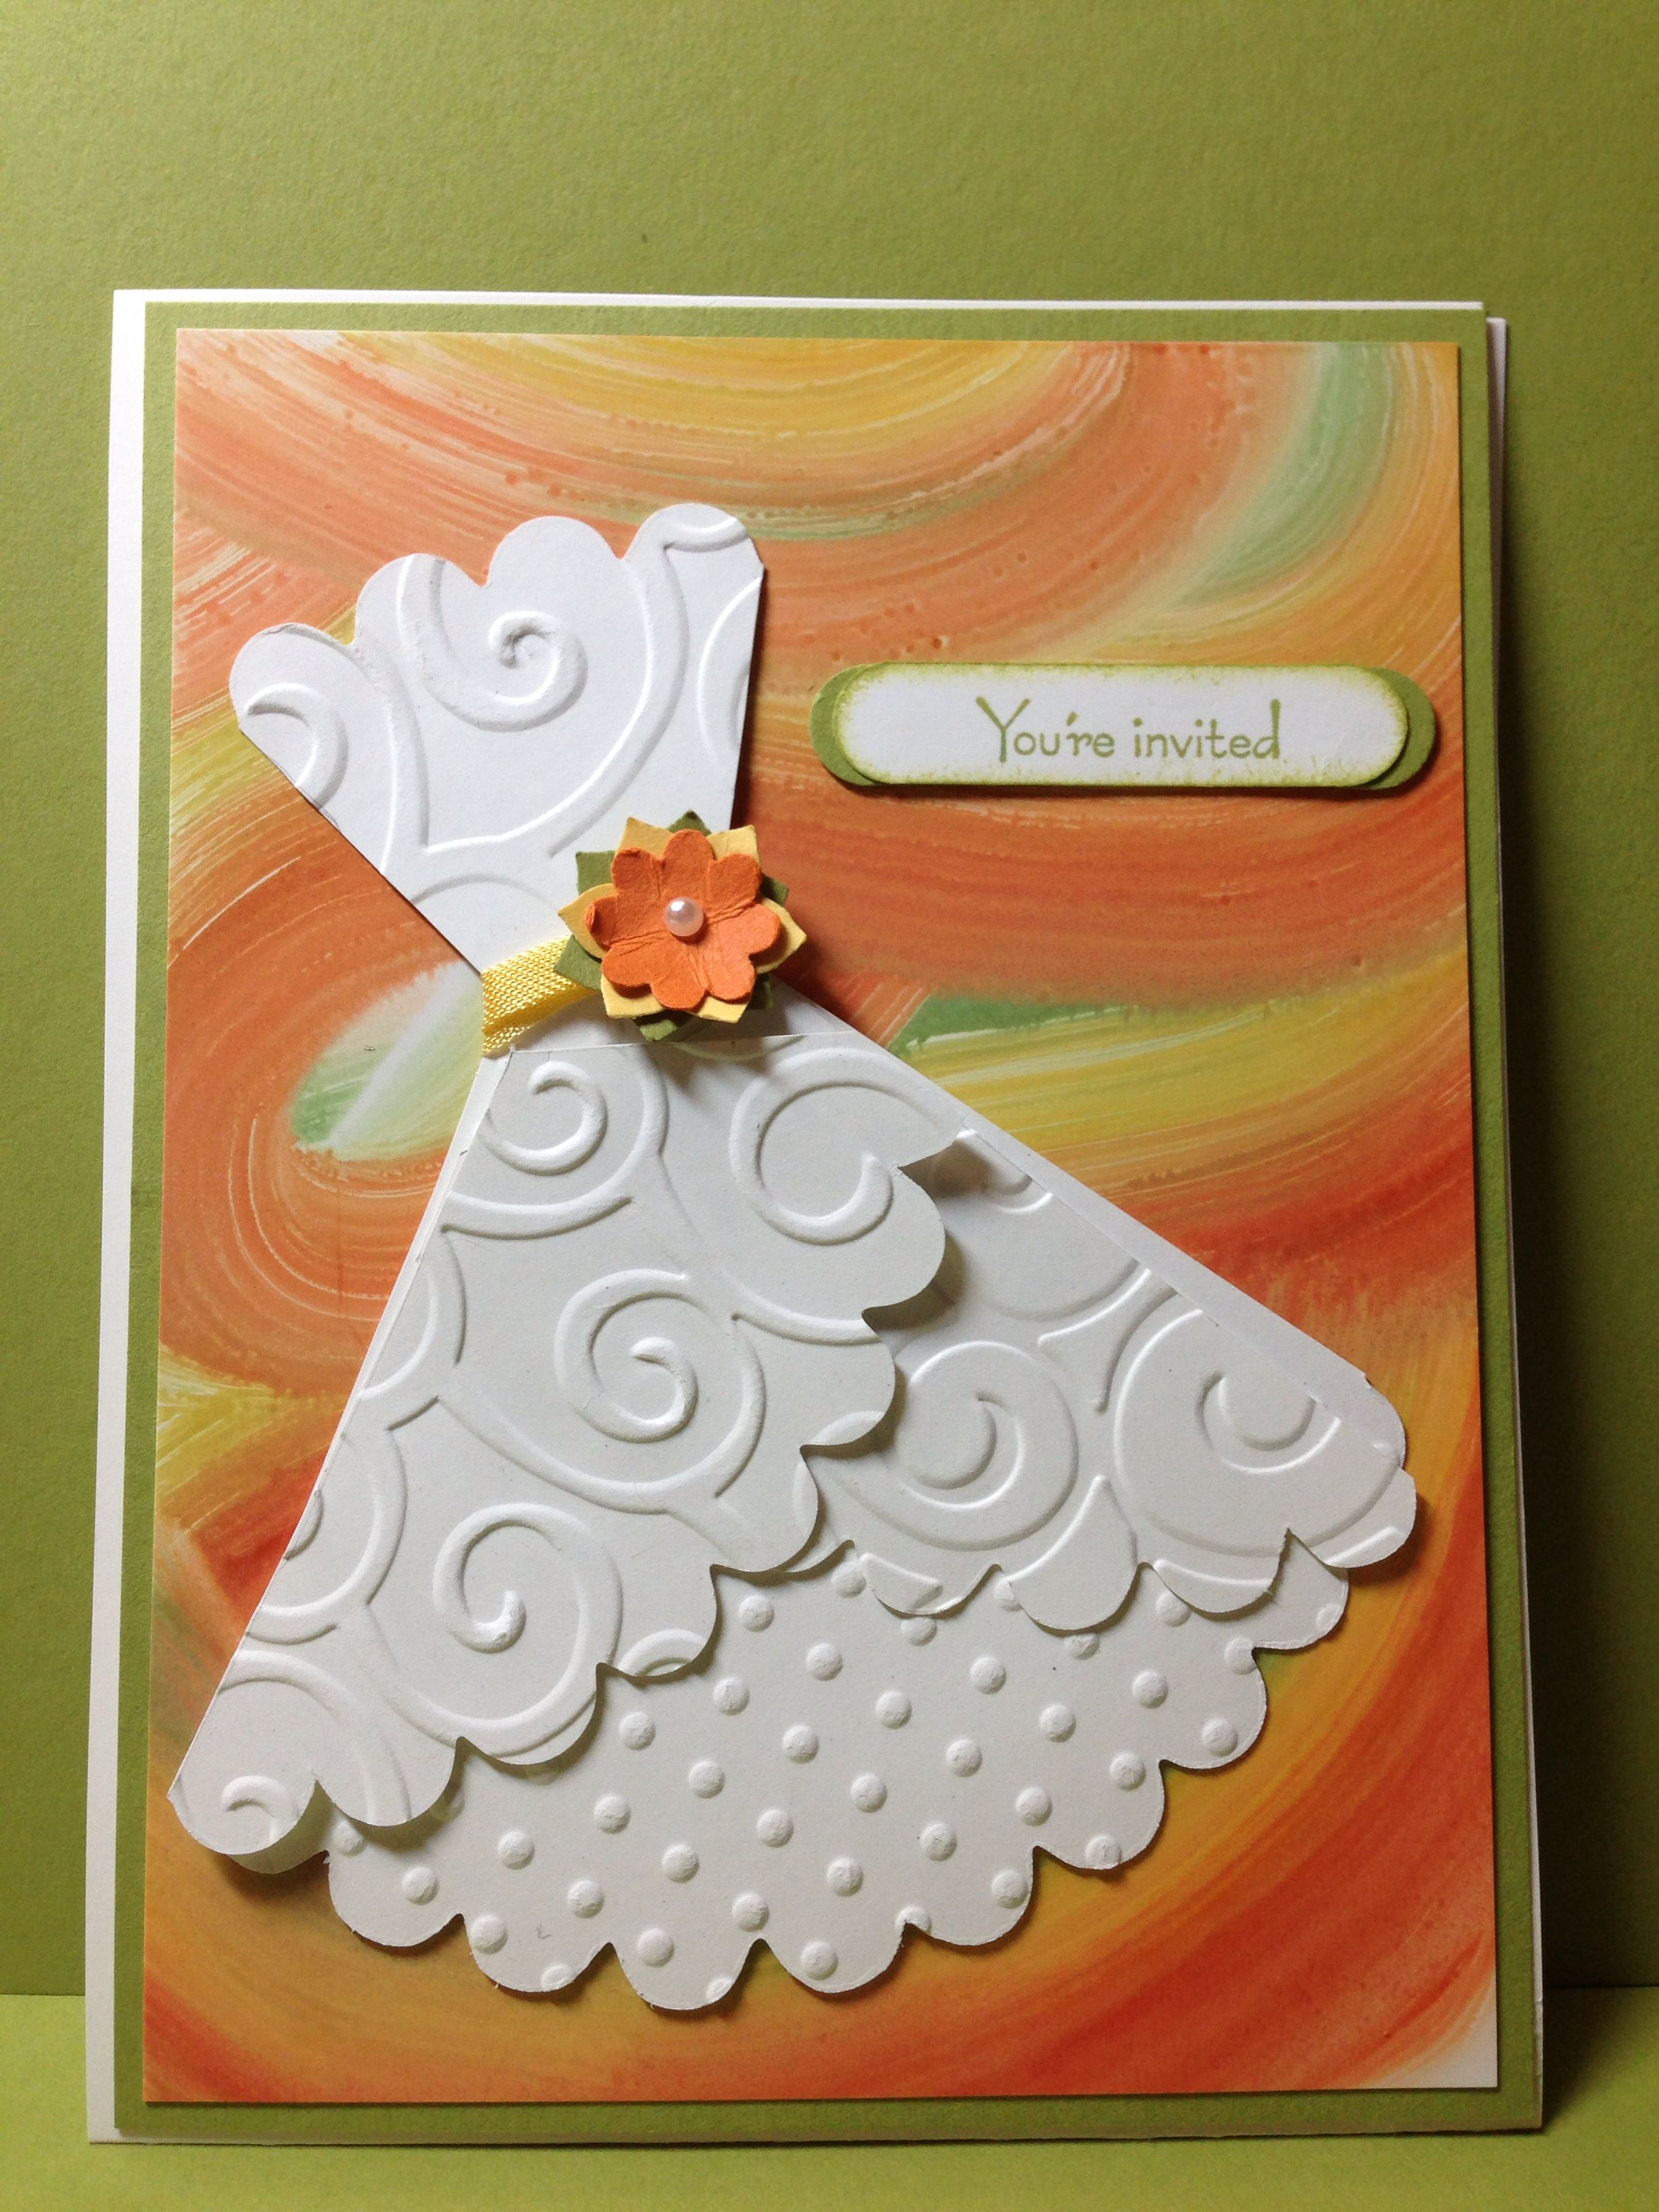 Wedding decorations background  Wedding shower invitation Custom card reflects the bridal party